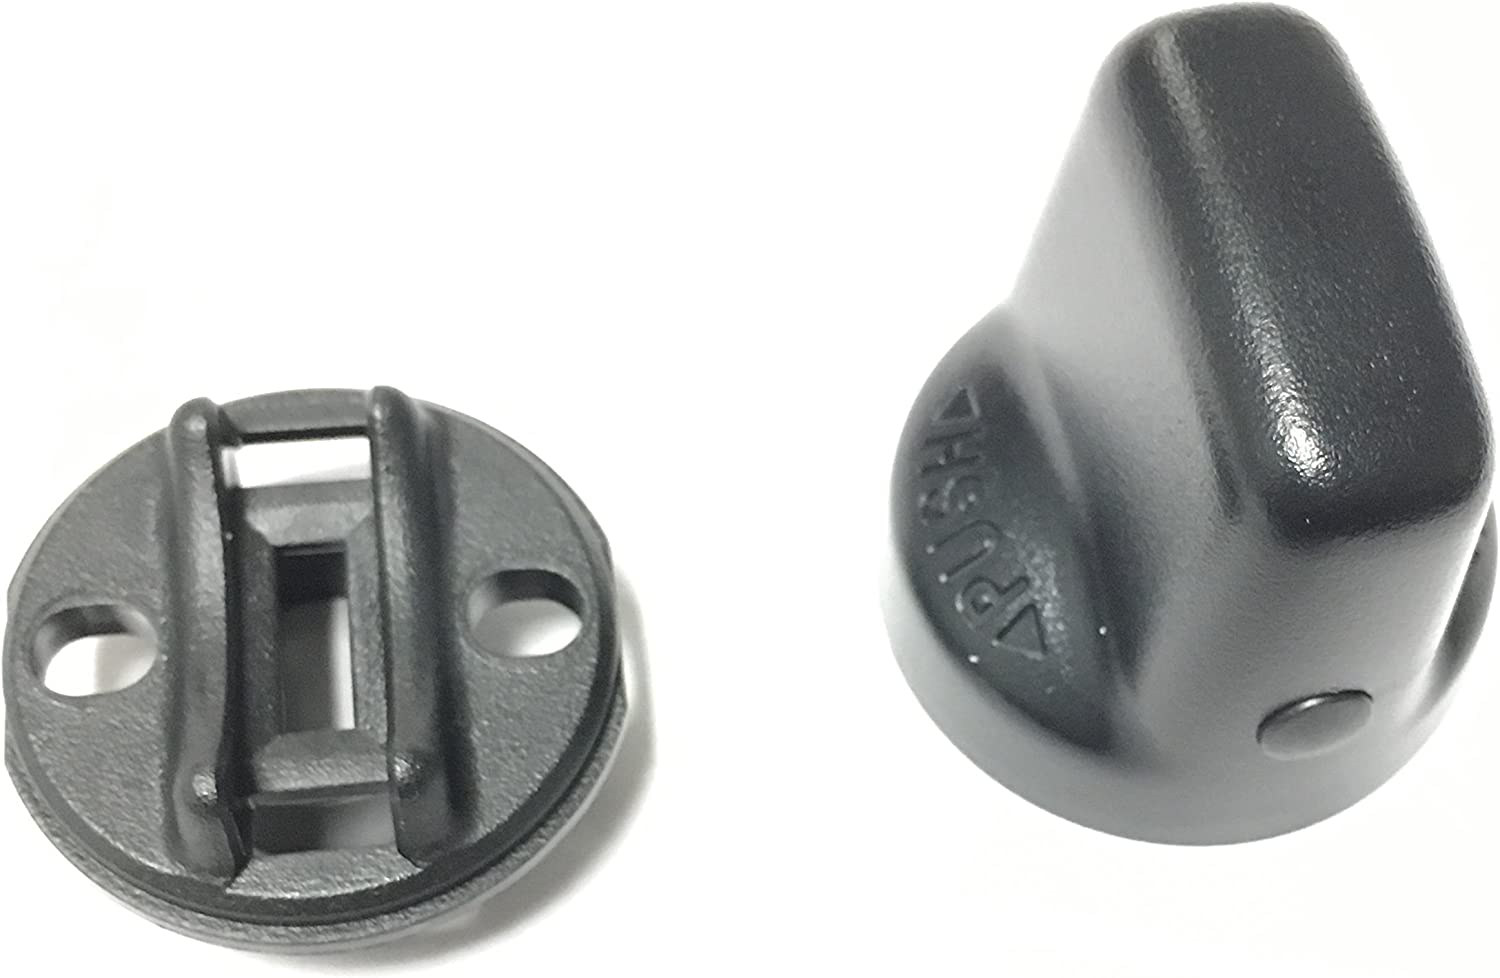 Hotwin Ignition Start Knob /& Insert Compatible with Mitsubishi Keyless Lancer 2008-2017 4408A167 4408A031